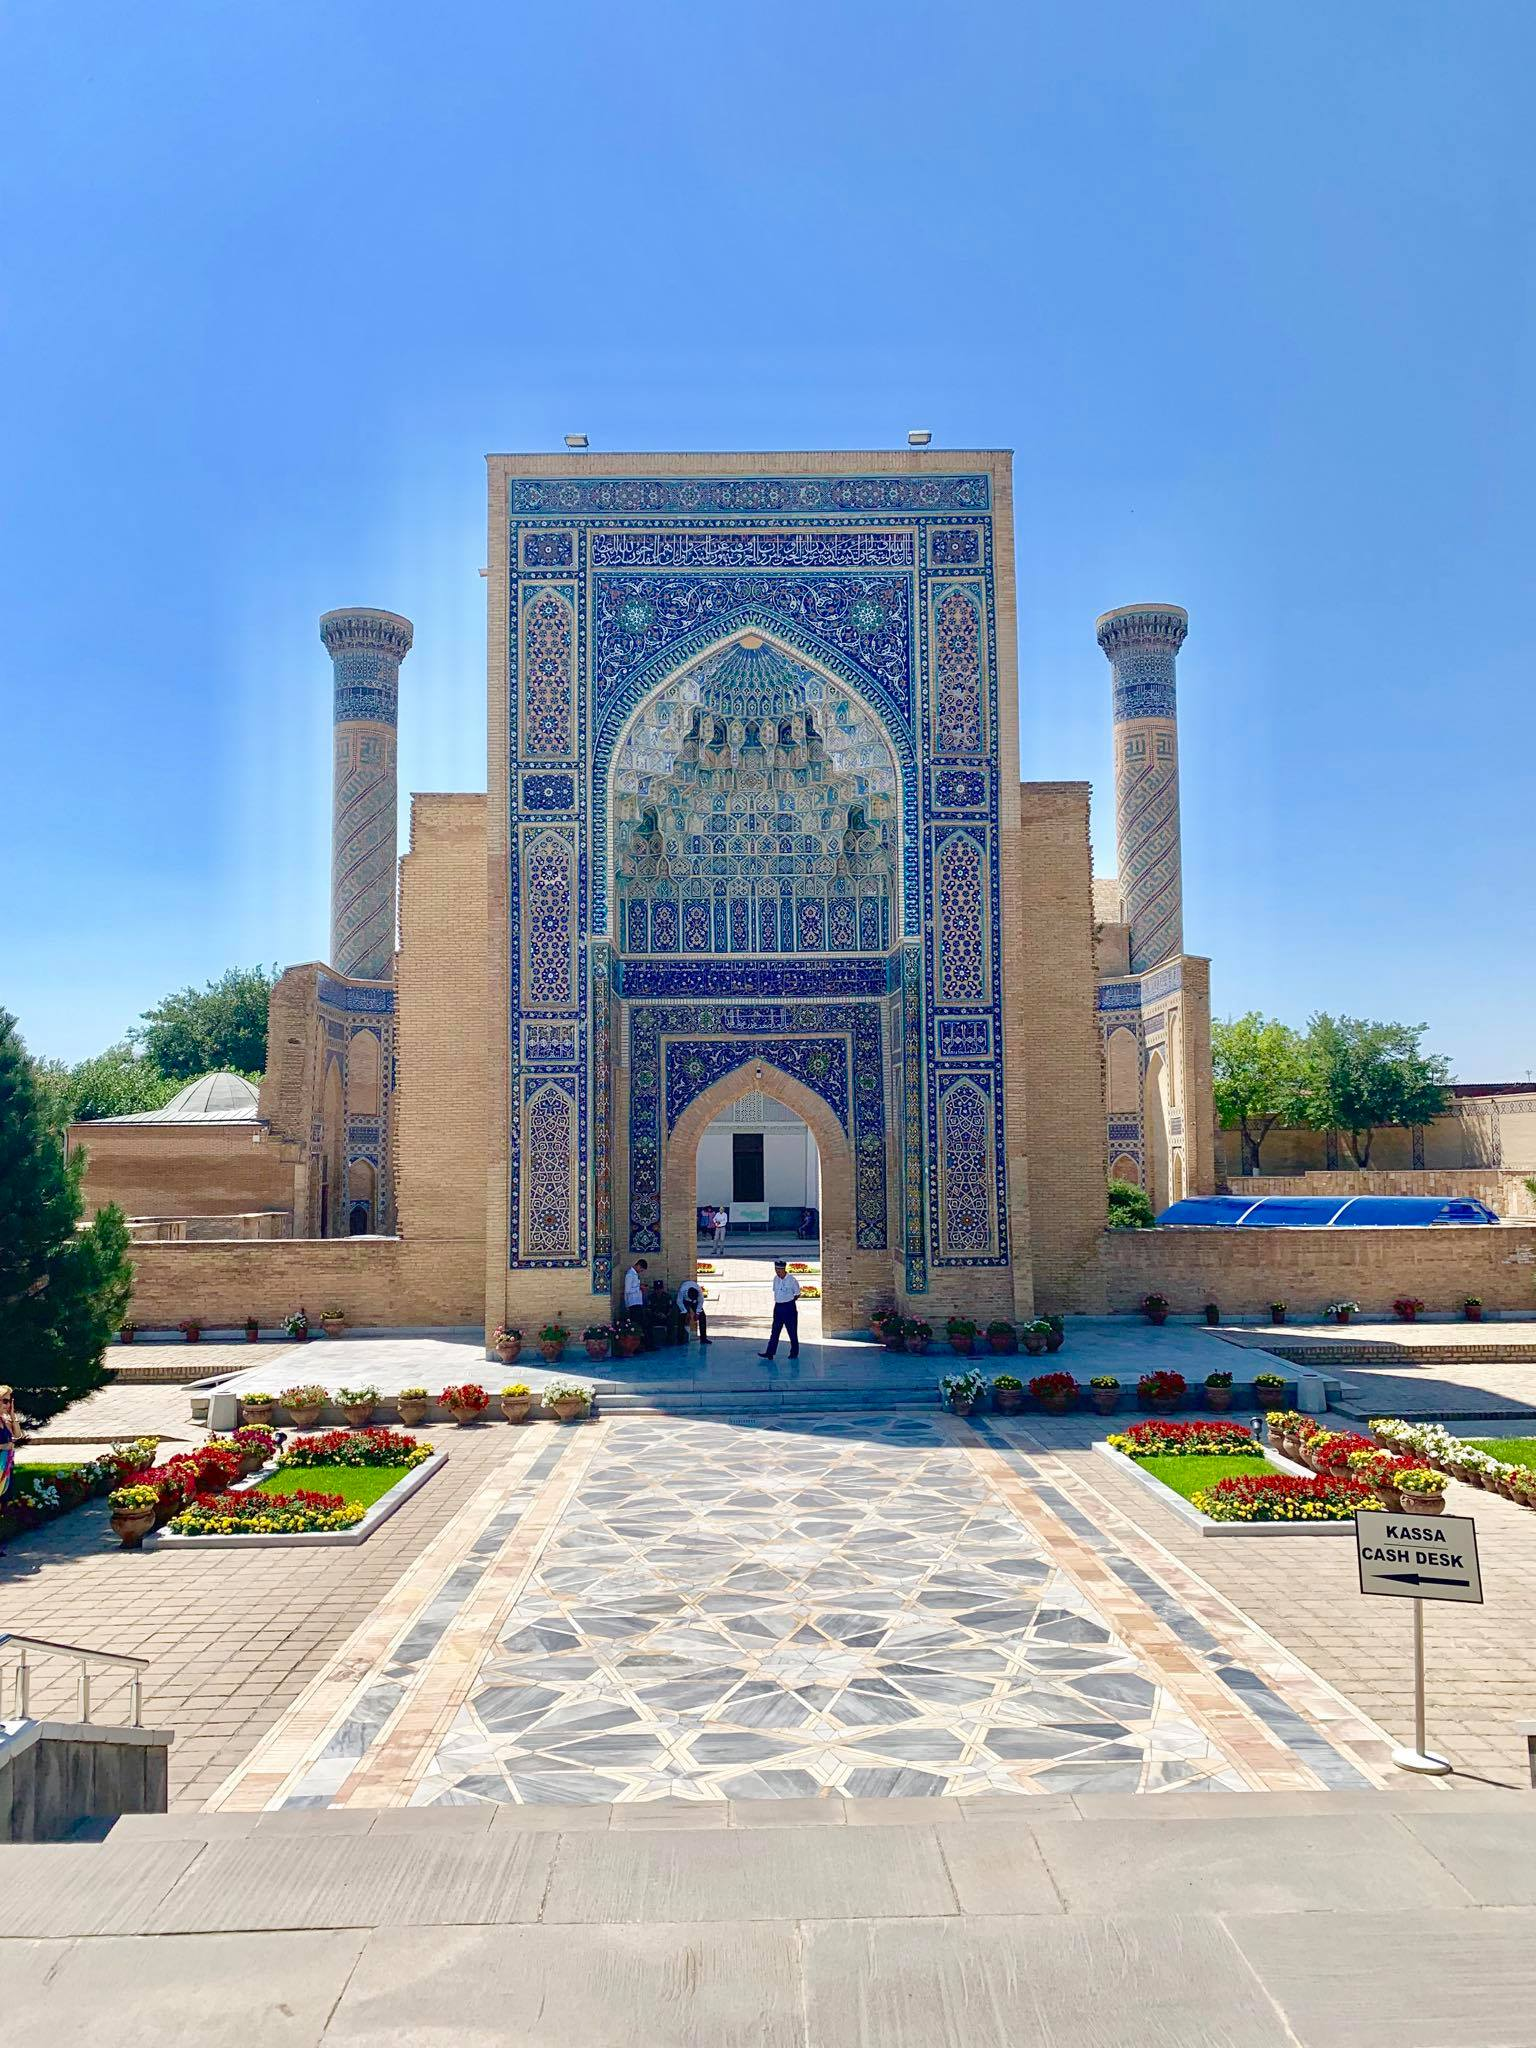 Kach Solo Travels in 2019 Hello from Samarqand  Samarkand in the southeastern part of Uzbekistan8.jpg